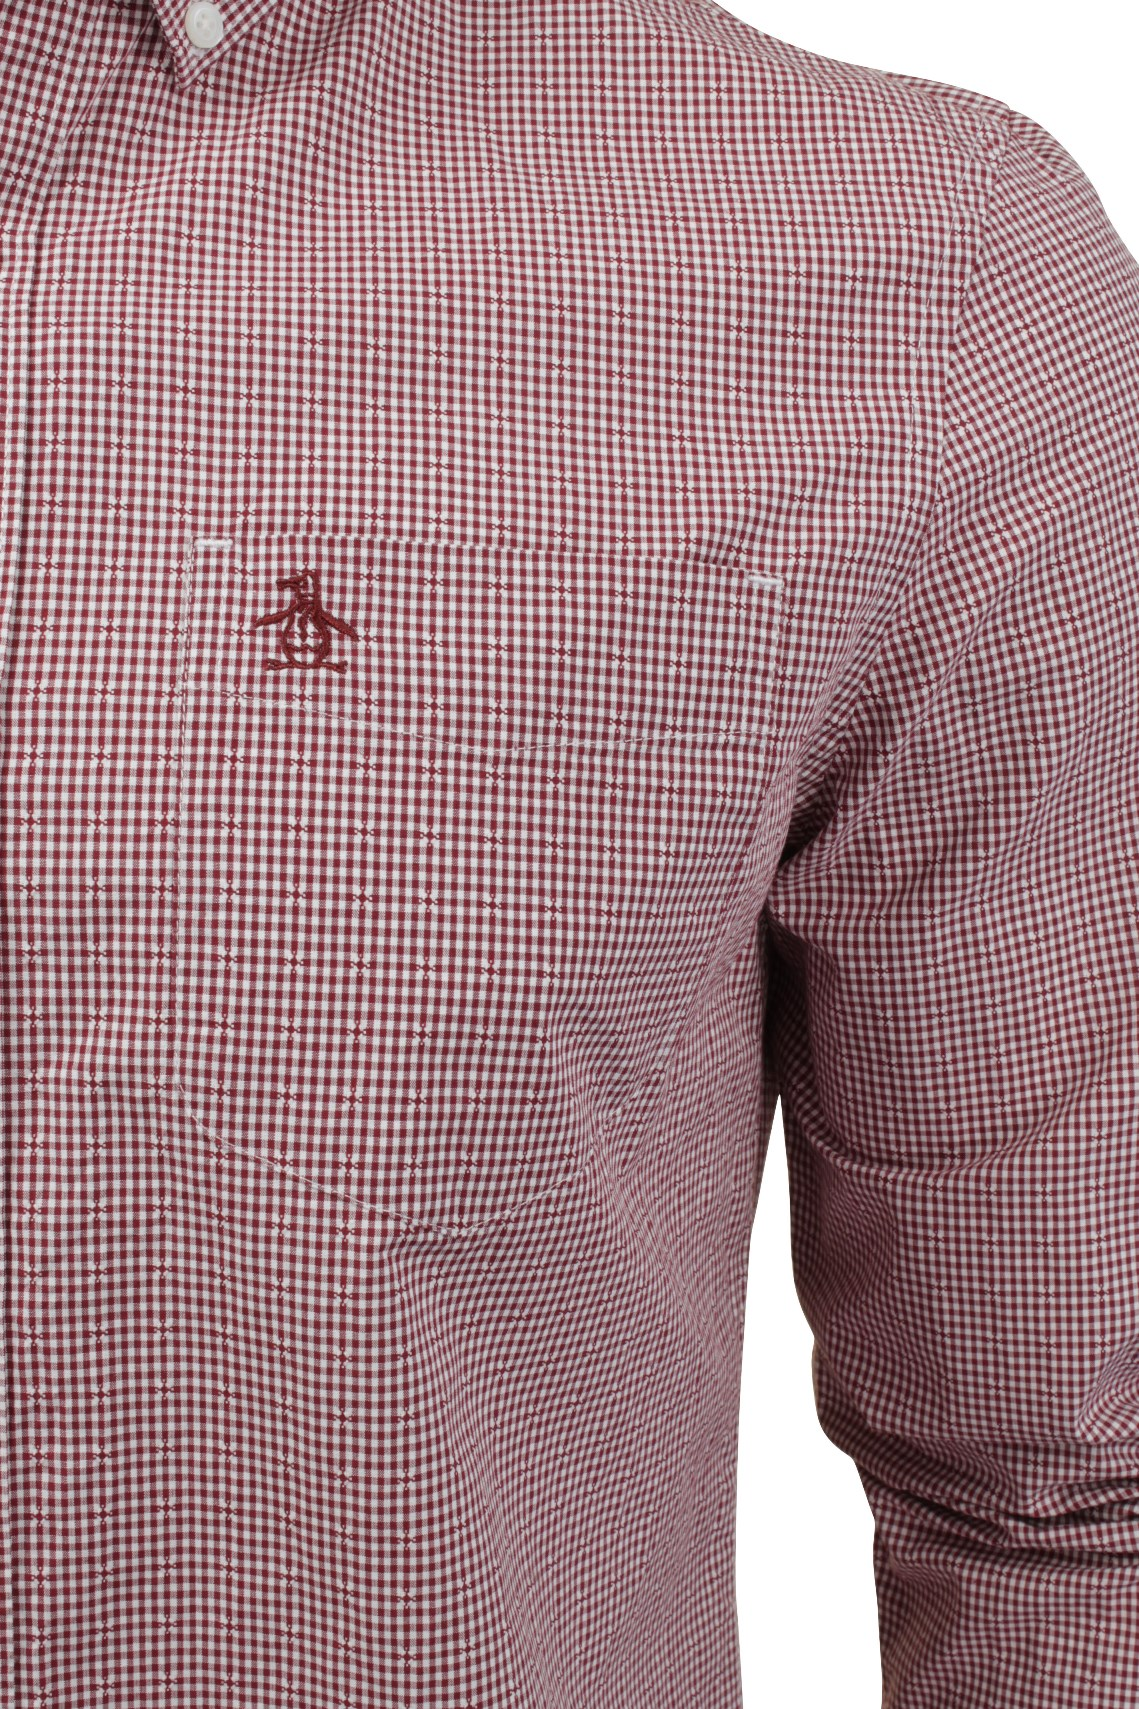 Mens-Long-Sleeved-Gingham-Shirt-by-Original-Penguin thumbnail 7